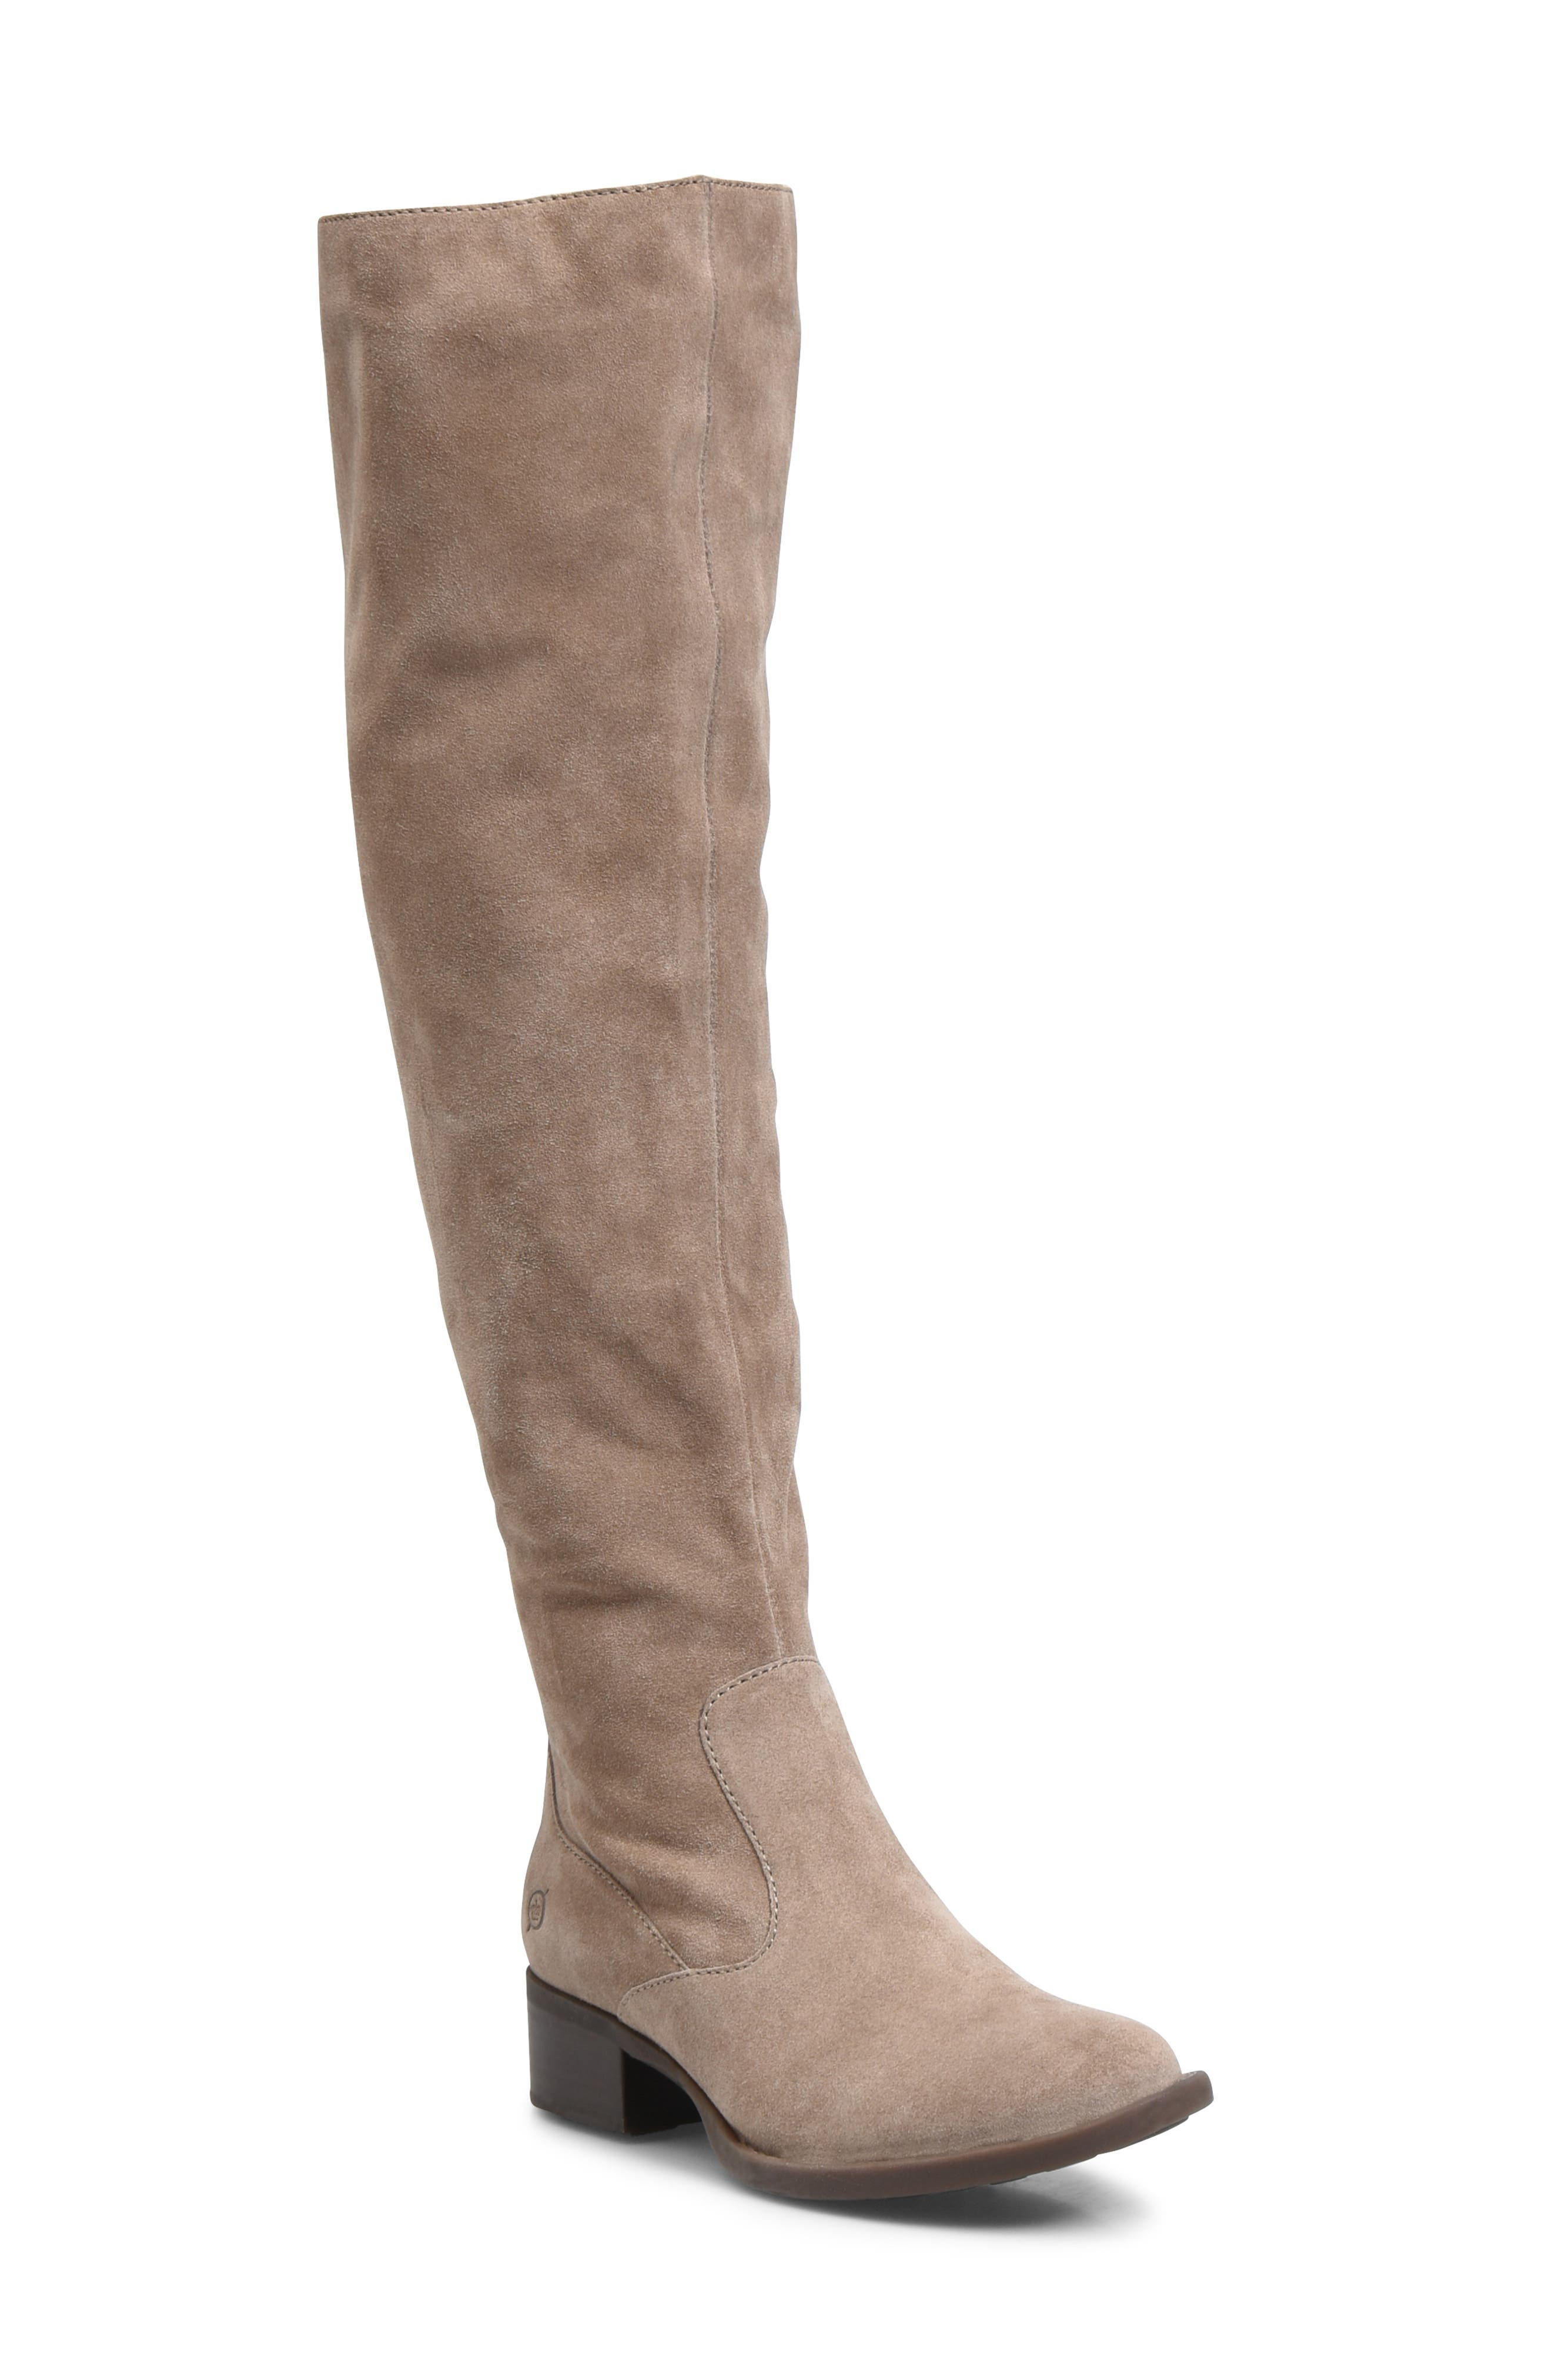 B?rn Cricket Over The Knee Boot- Beige